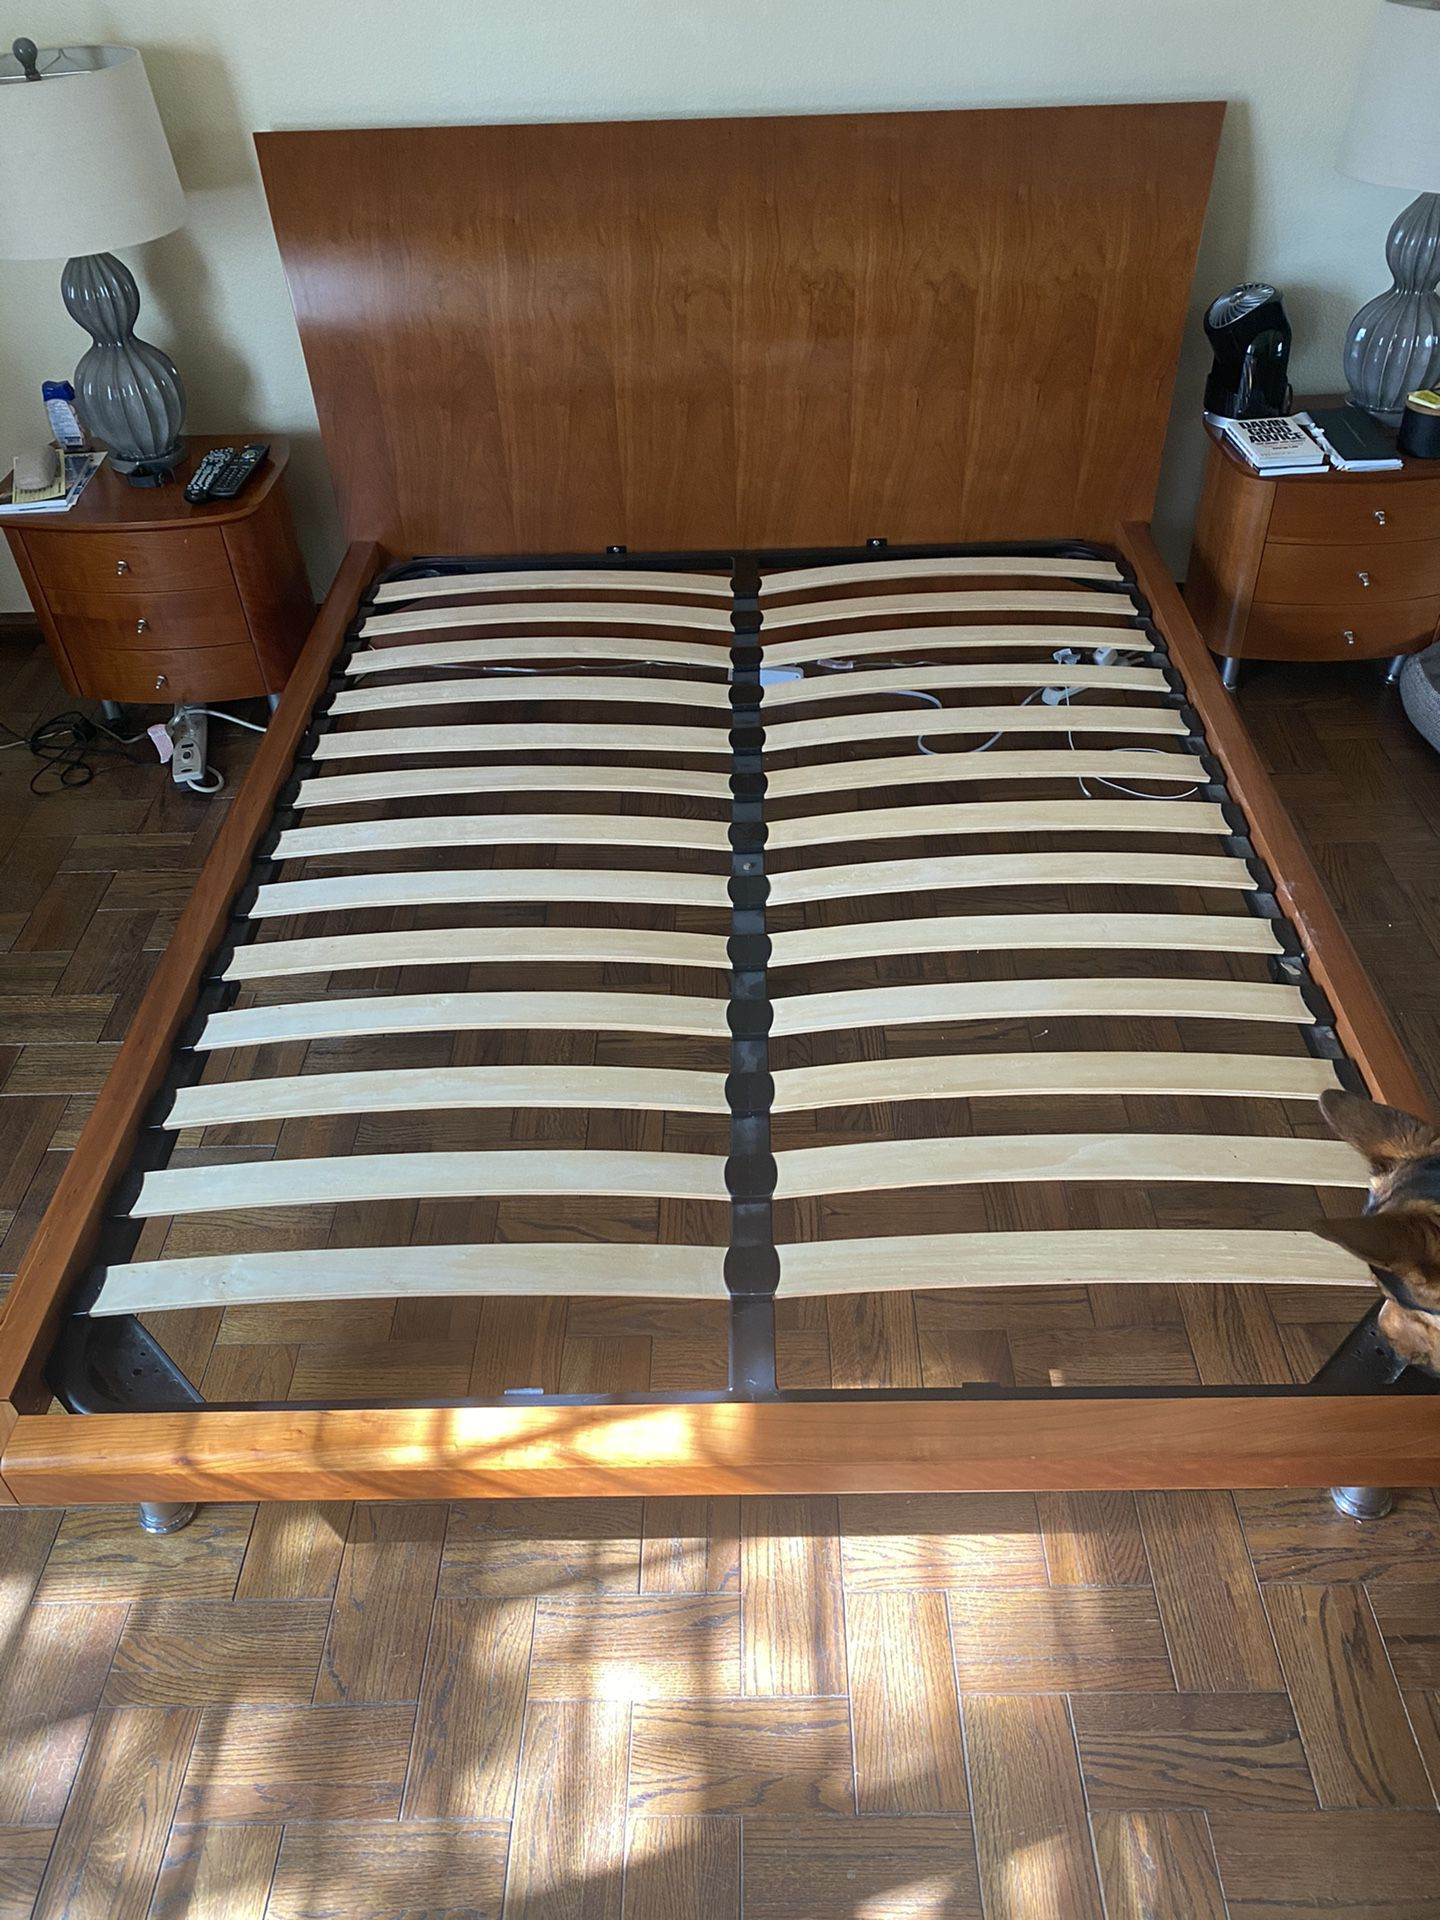 Queen Sized Wooden Bed Frame With 2 Night Stands And 6 Drawer Dresser